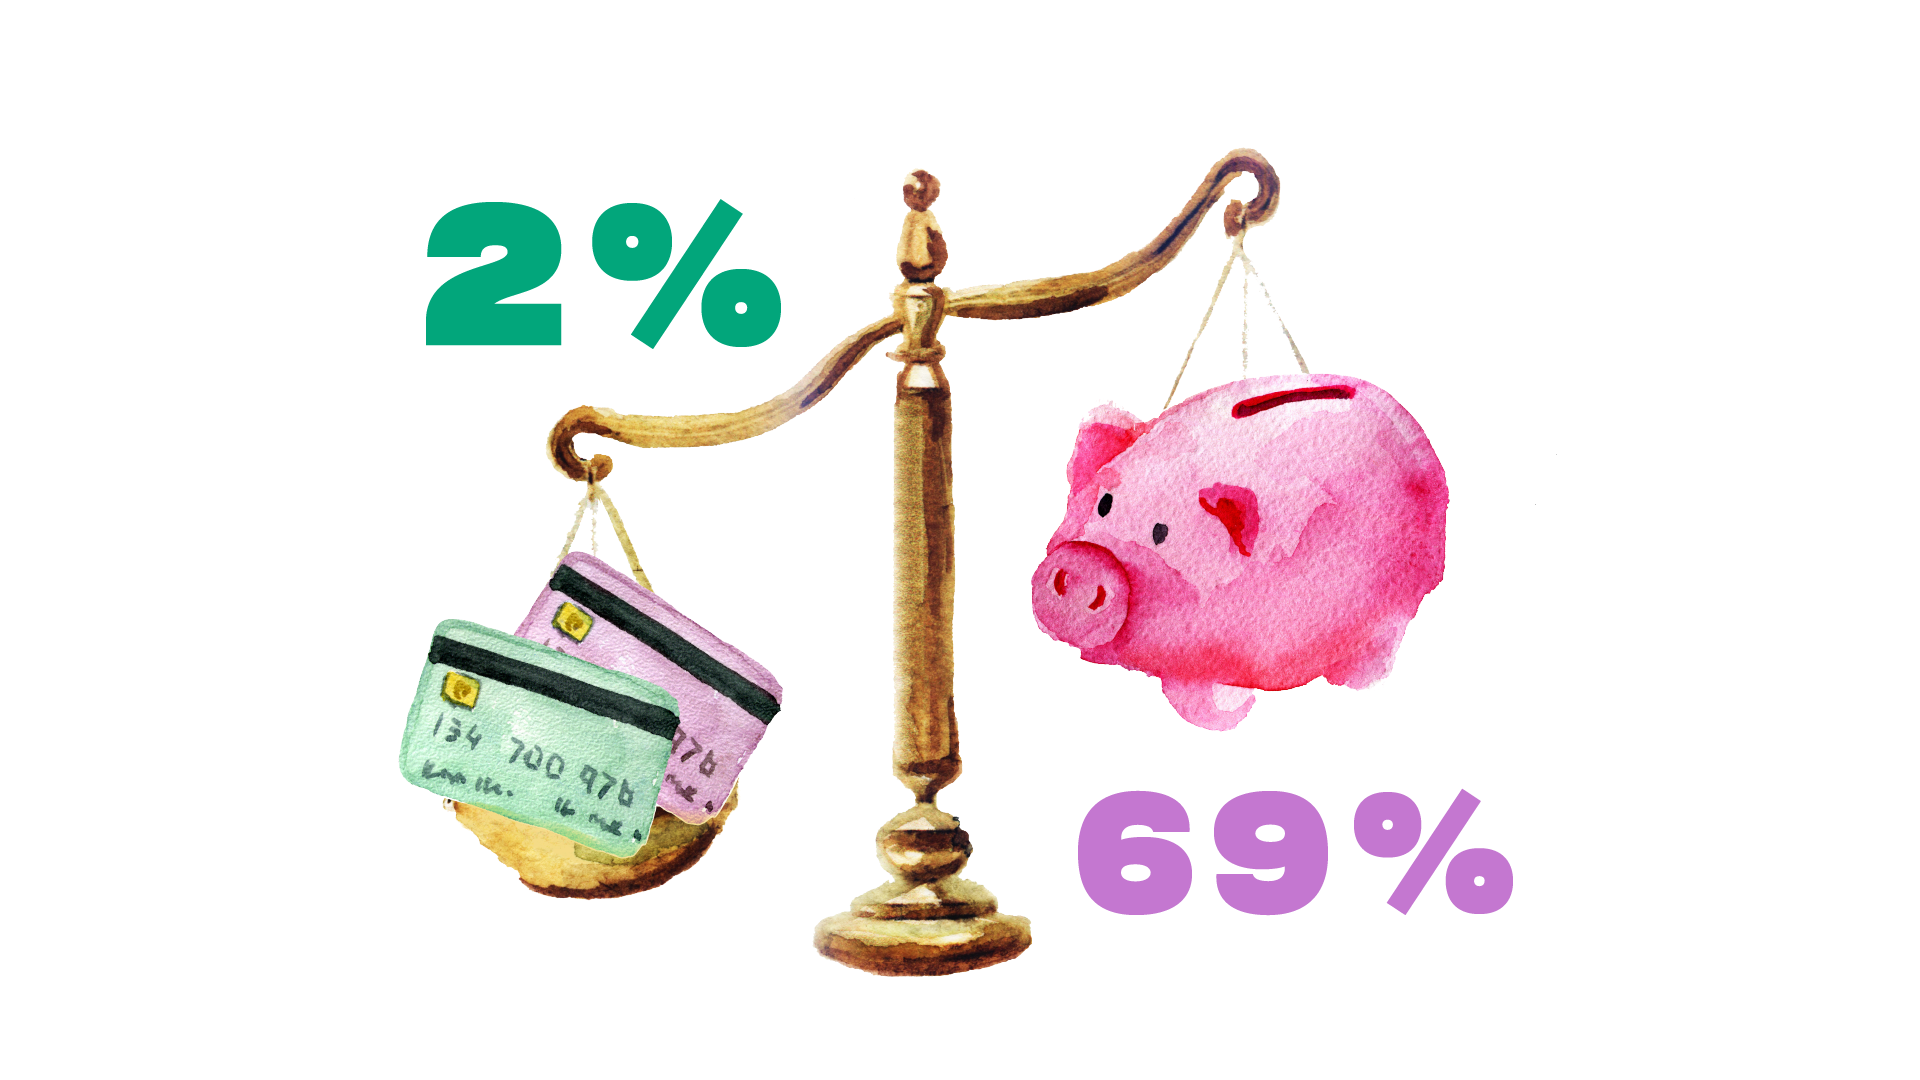 Scale balancing cards and a piggy bank: 69% Direct deposit to bank account vs. 2.2% Voucher or store gift card